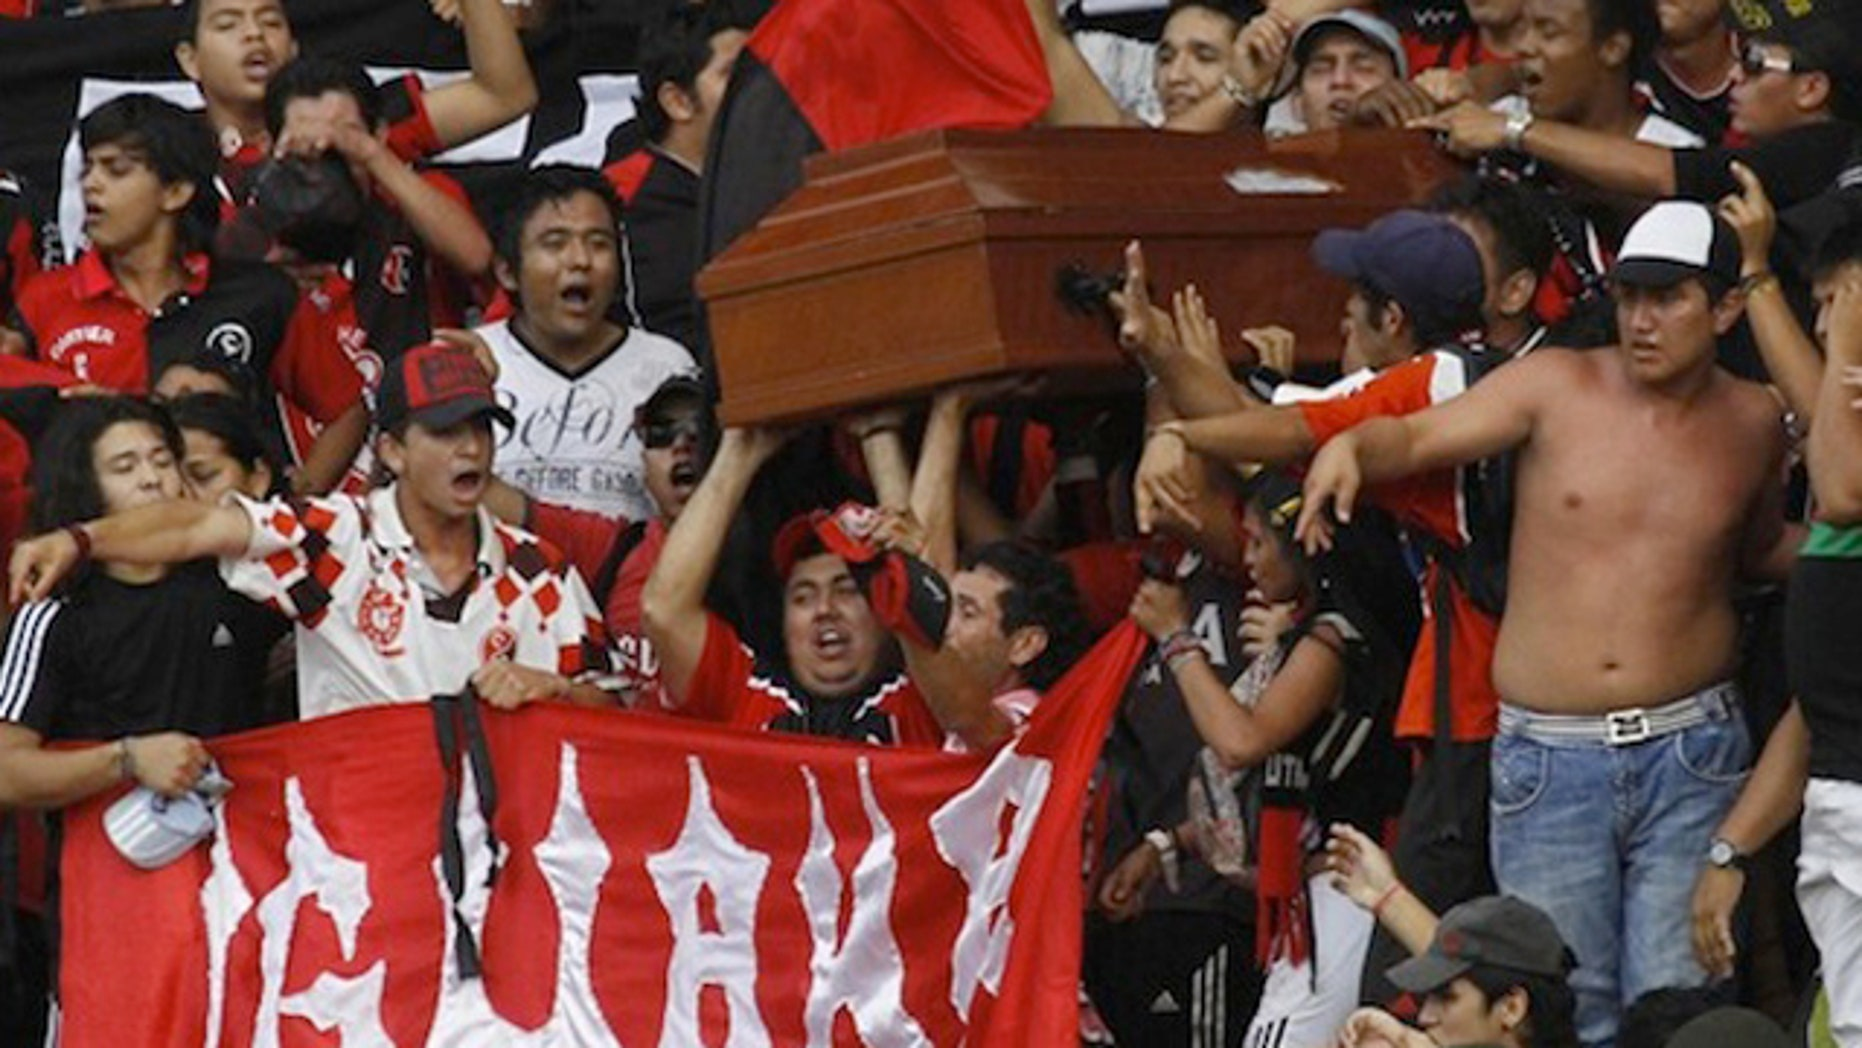 March 27: Supporters of Deportivo Cucuta football club carry a coffin as they arrive to the General Santander Stadium in Cucuta, Colombia.